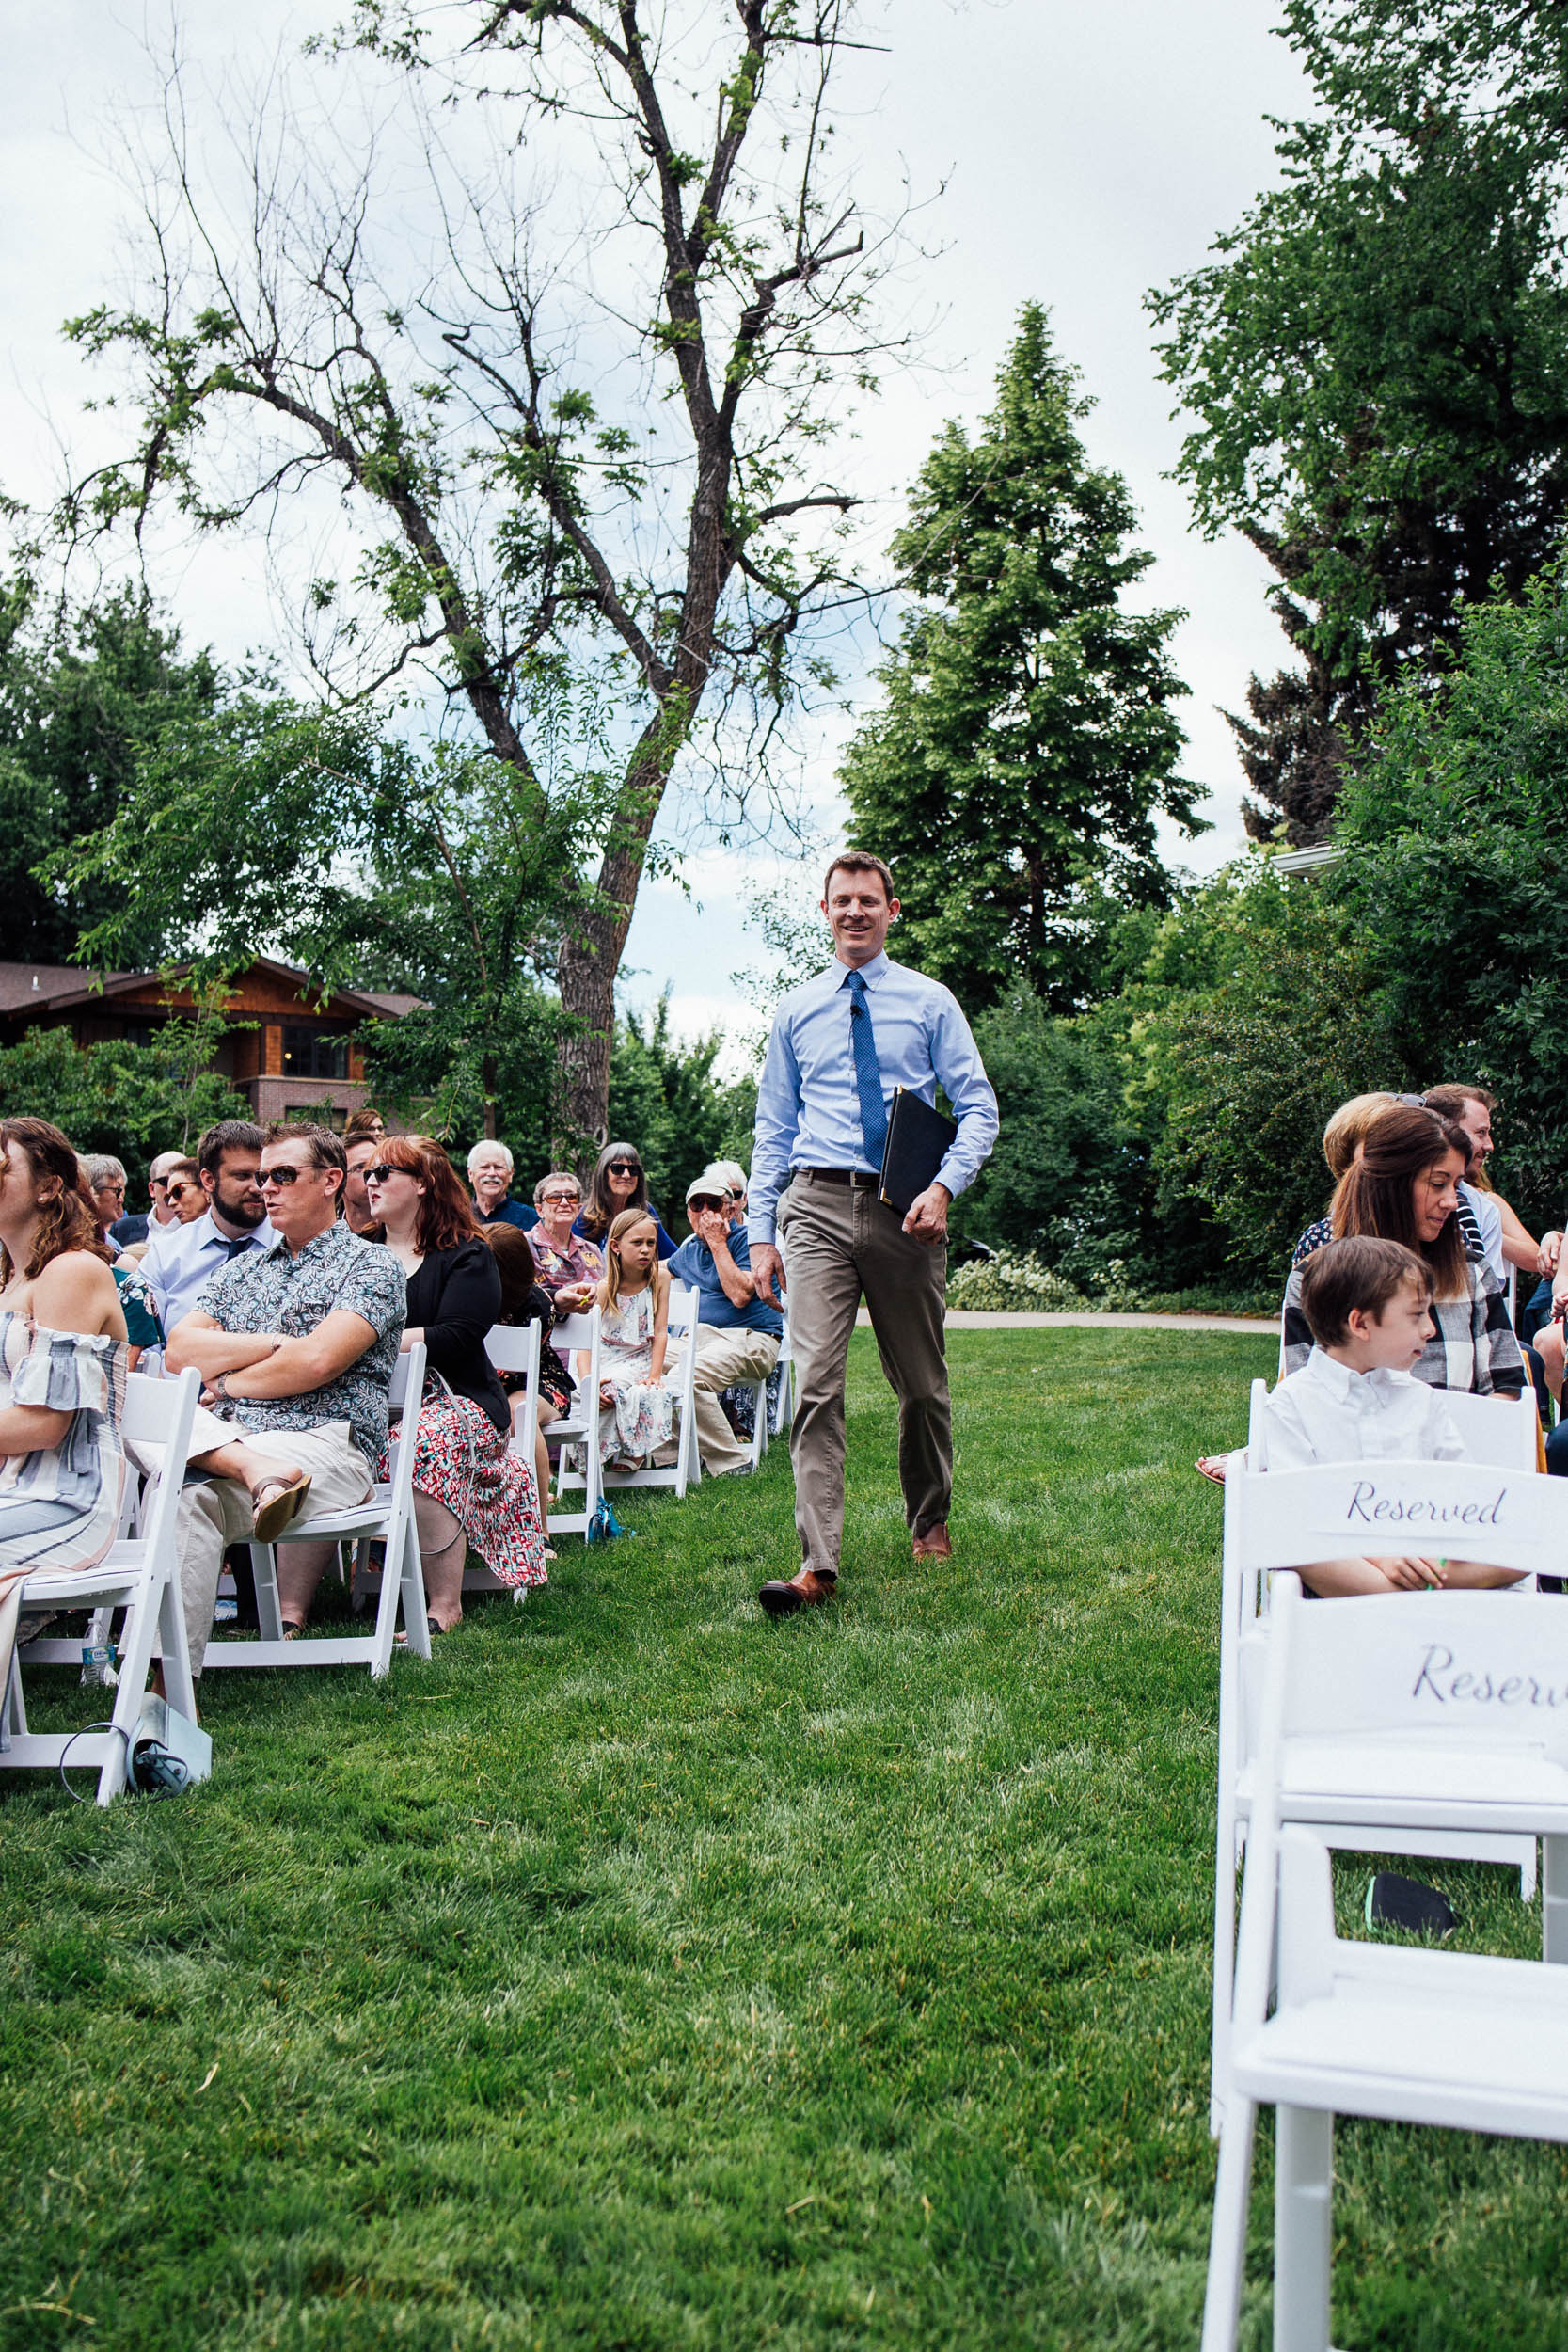 Colorado-Backyard-Wedding-Photographer-35.jpg